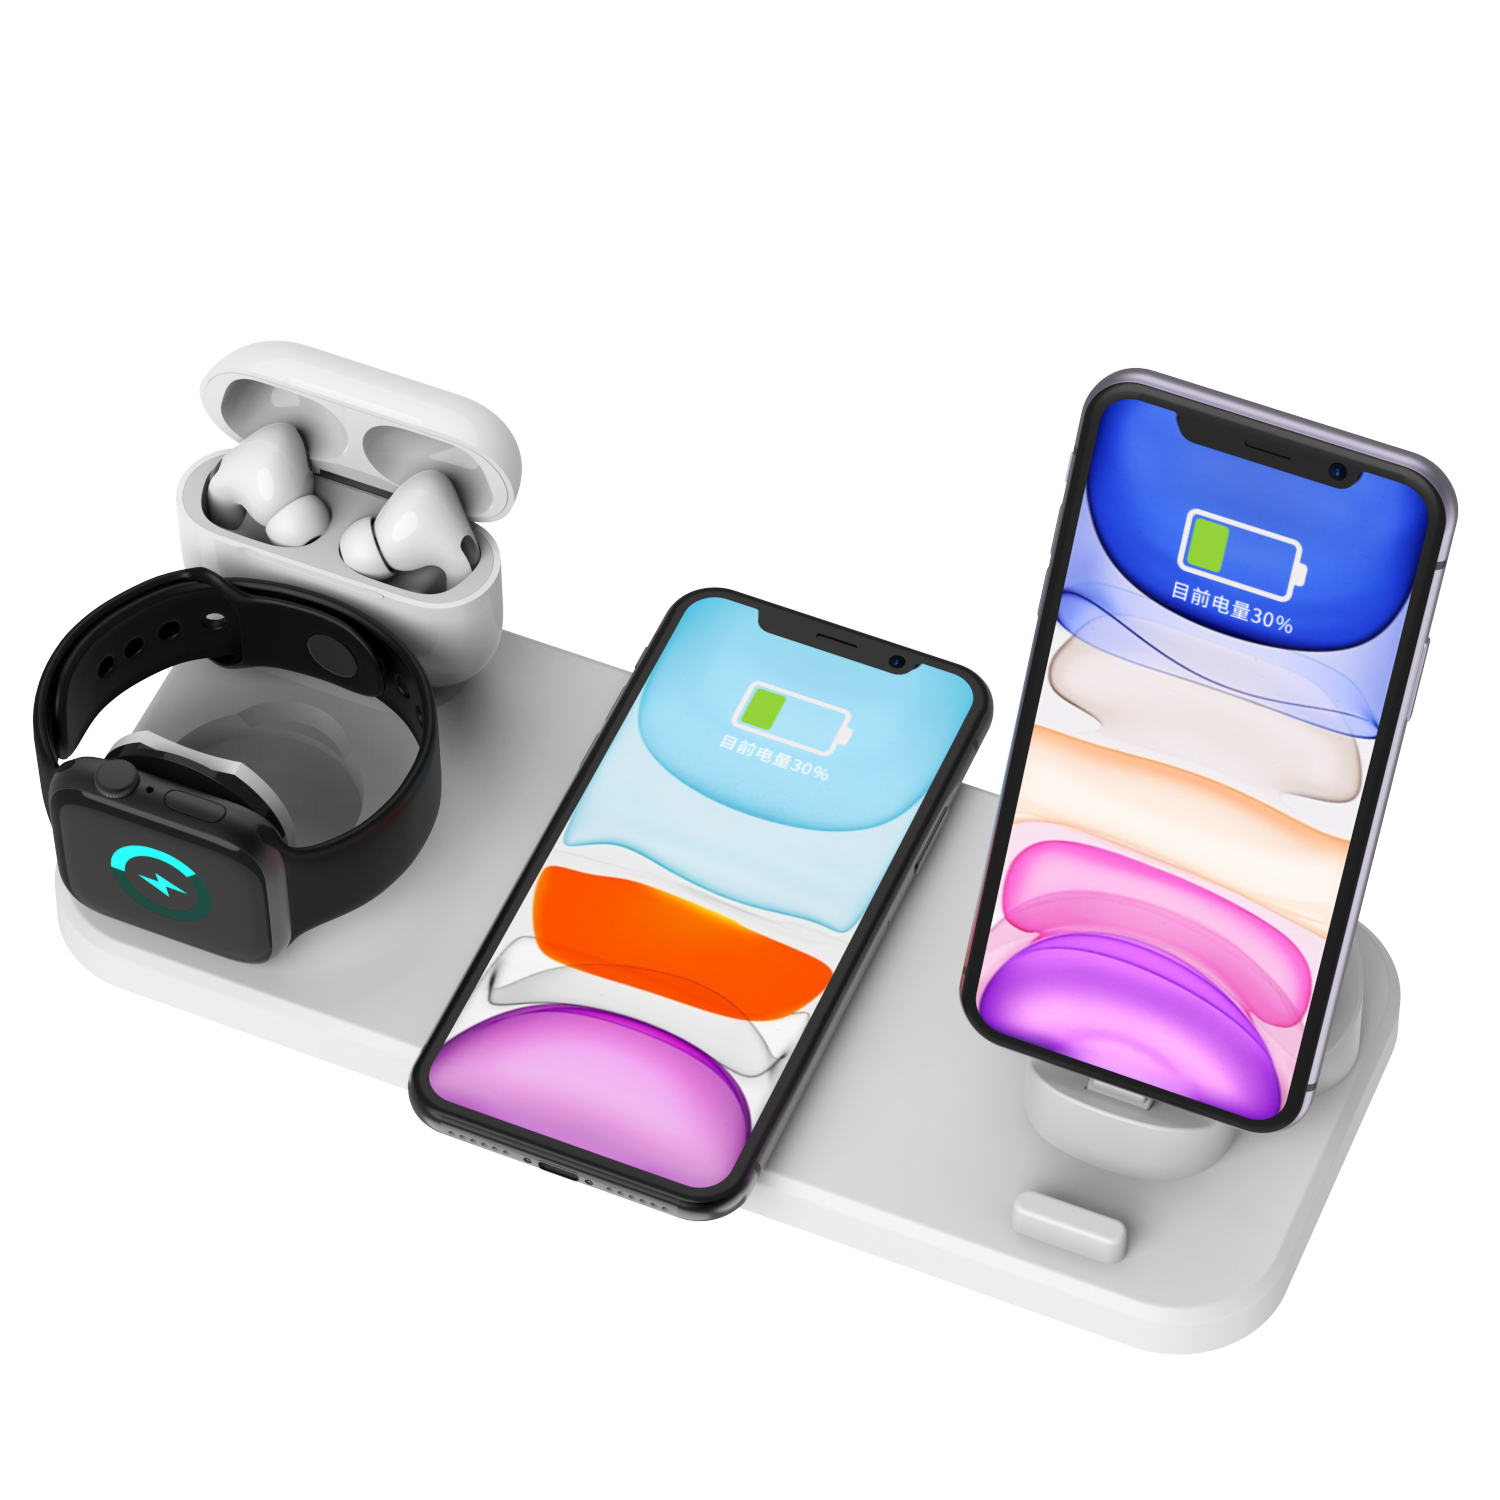 6 in 1 Multifunction Wireless Charging Station